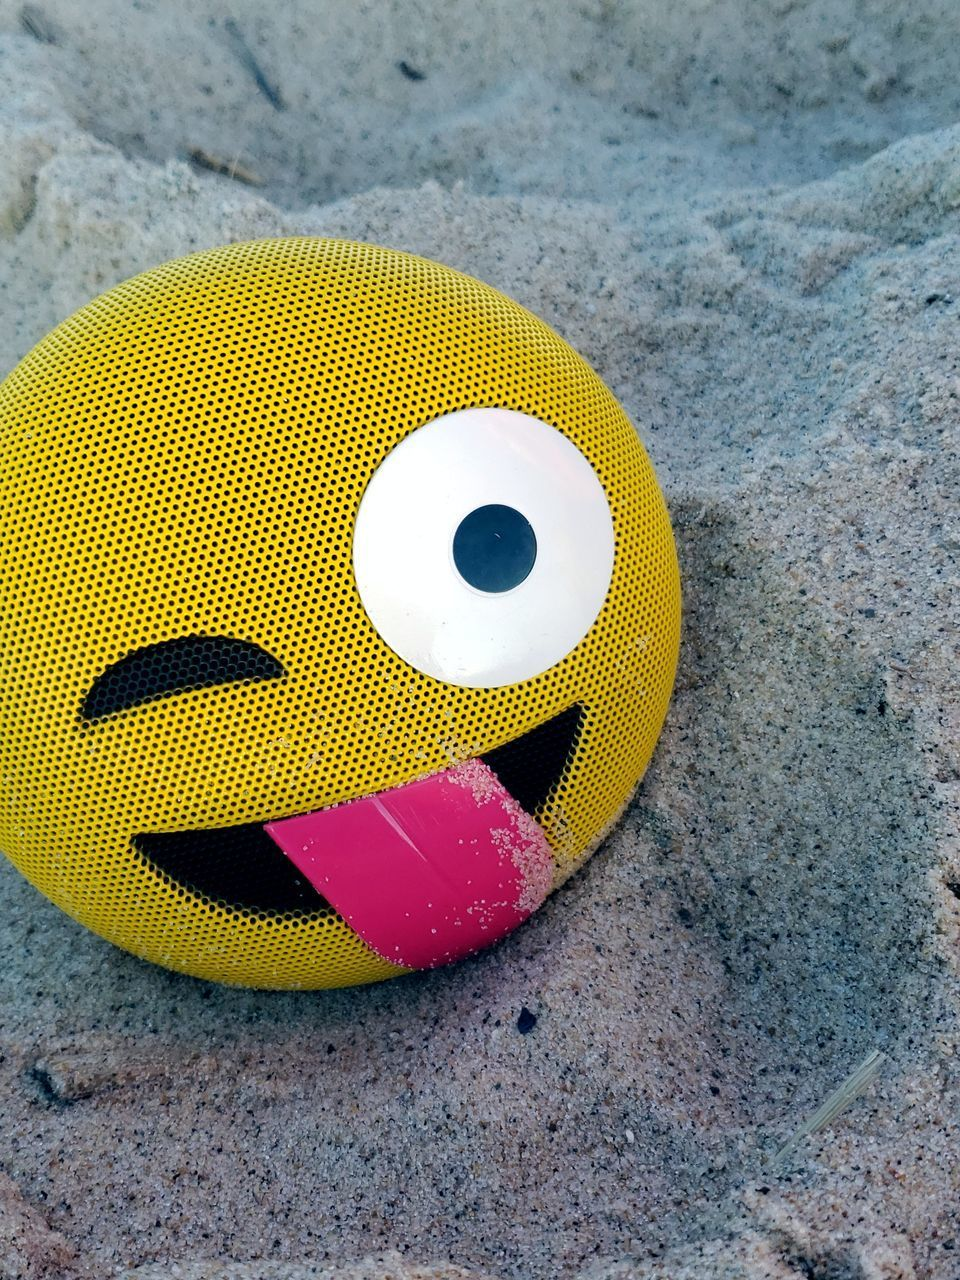 yellow, no people, sand, land, high angle view, beach, close-up, still life, sport, day, ball, nature, art and craft, outdoors, single object, sports equipment, smiling, representation, focus on foreground, anthropomorphic smiley face, personal accessory